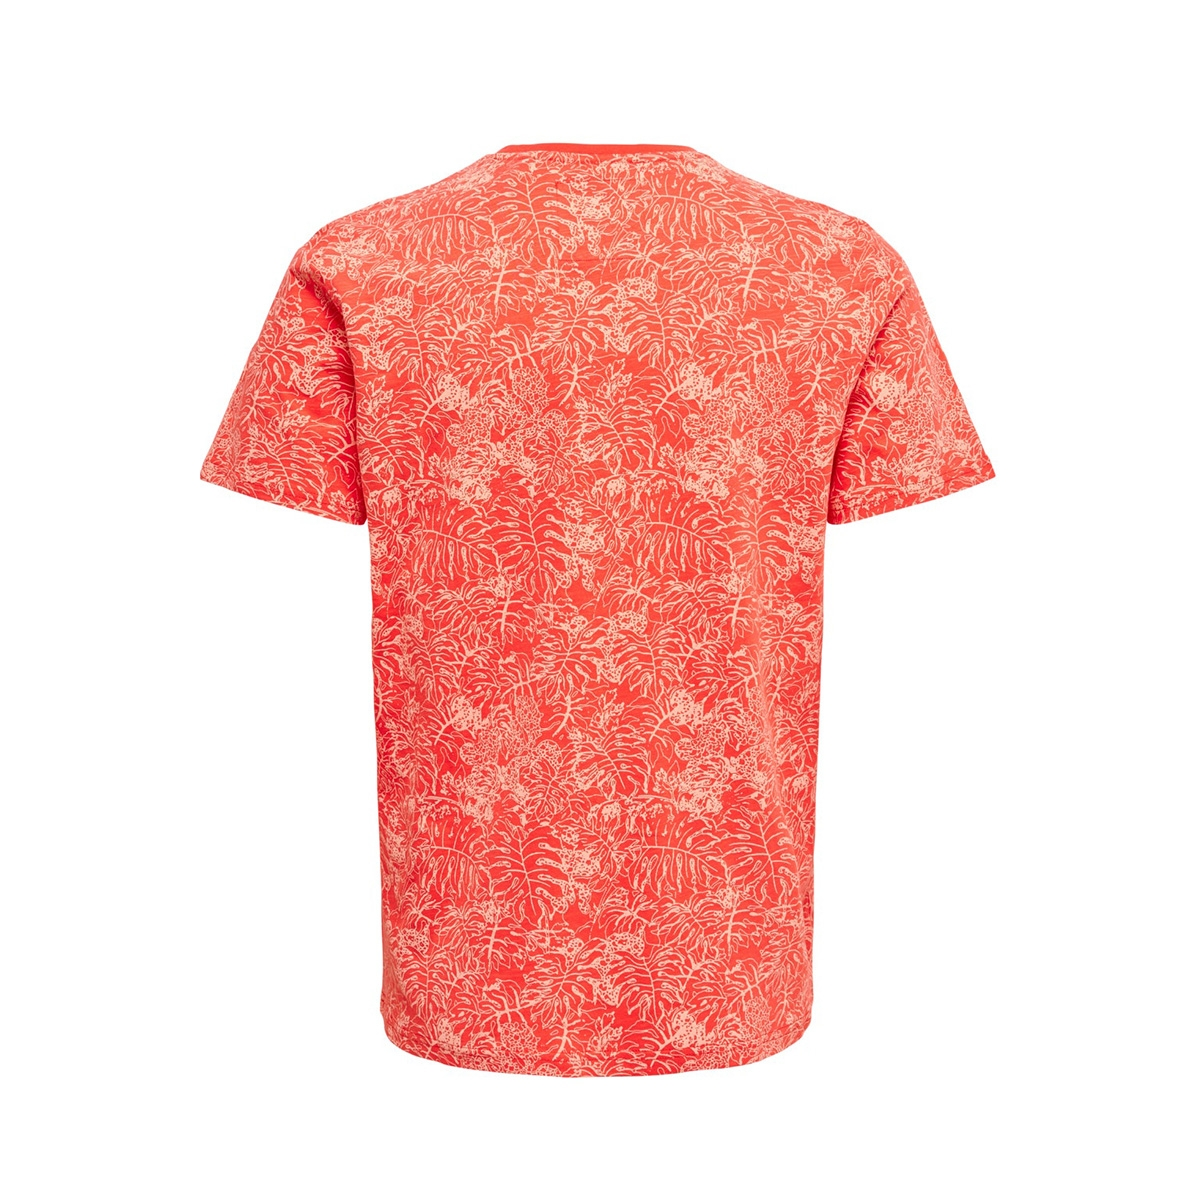 onscaj life slim aop  tee nf 6209 22016209 only & sons t-shirt hot coral